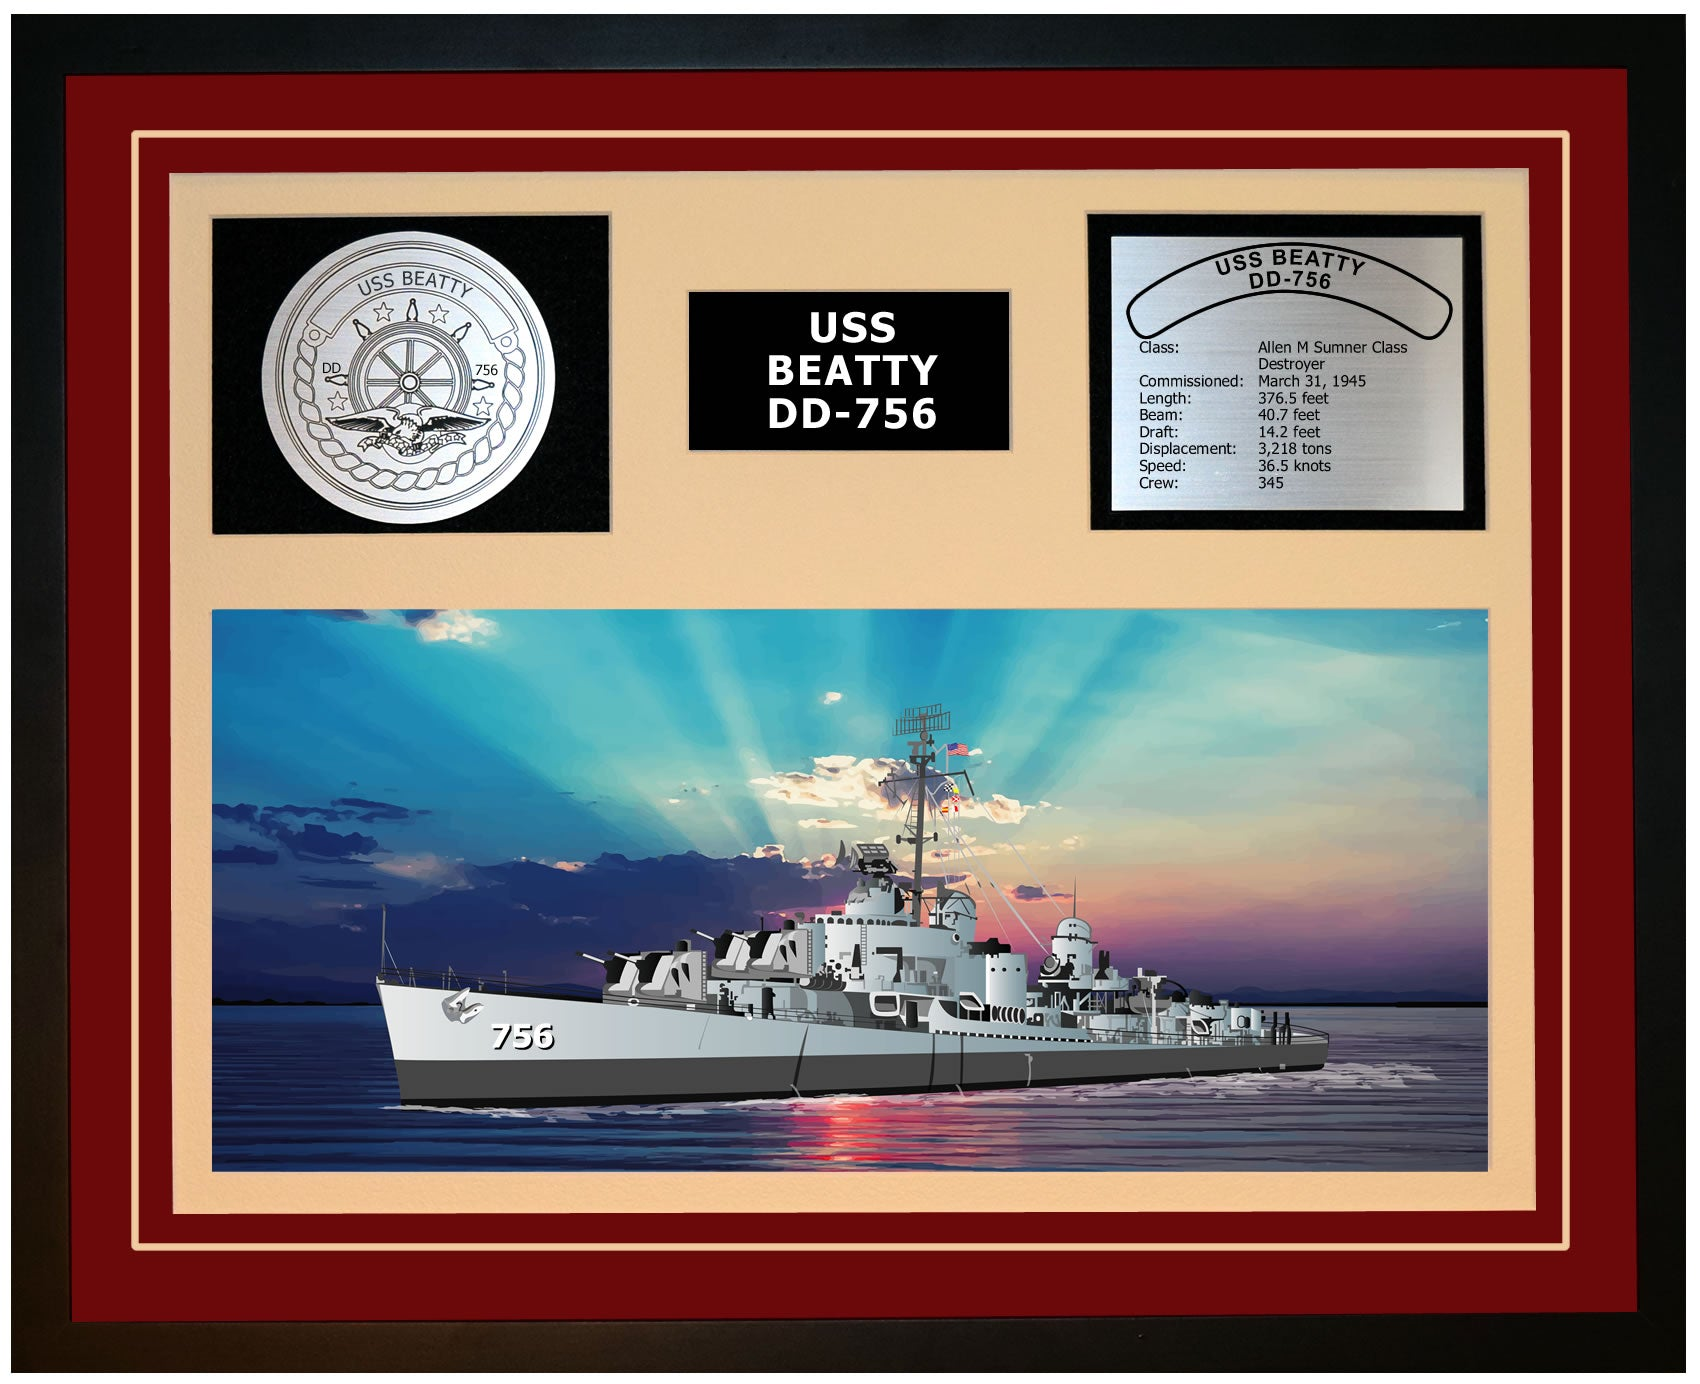 USS BEATTY DD-756 Framed Navy Ship Display Burgundy